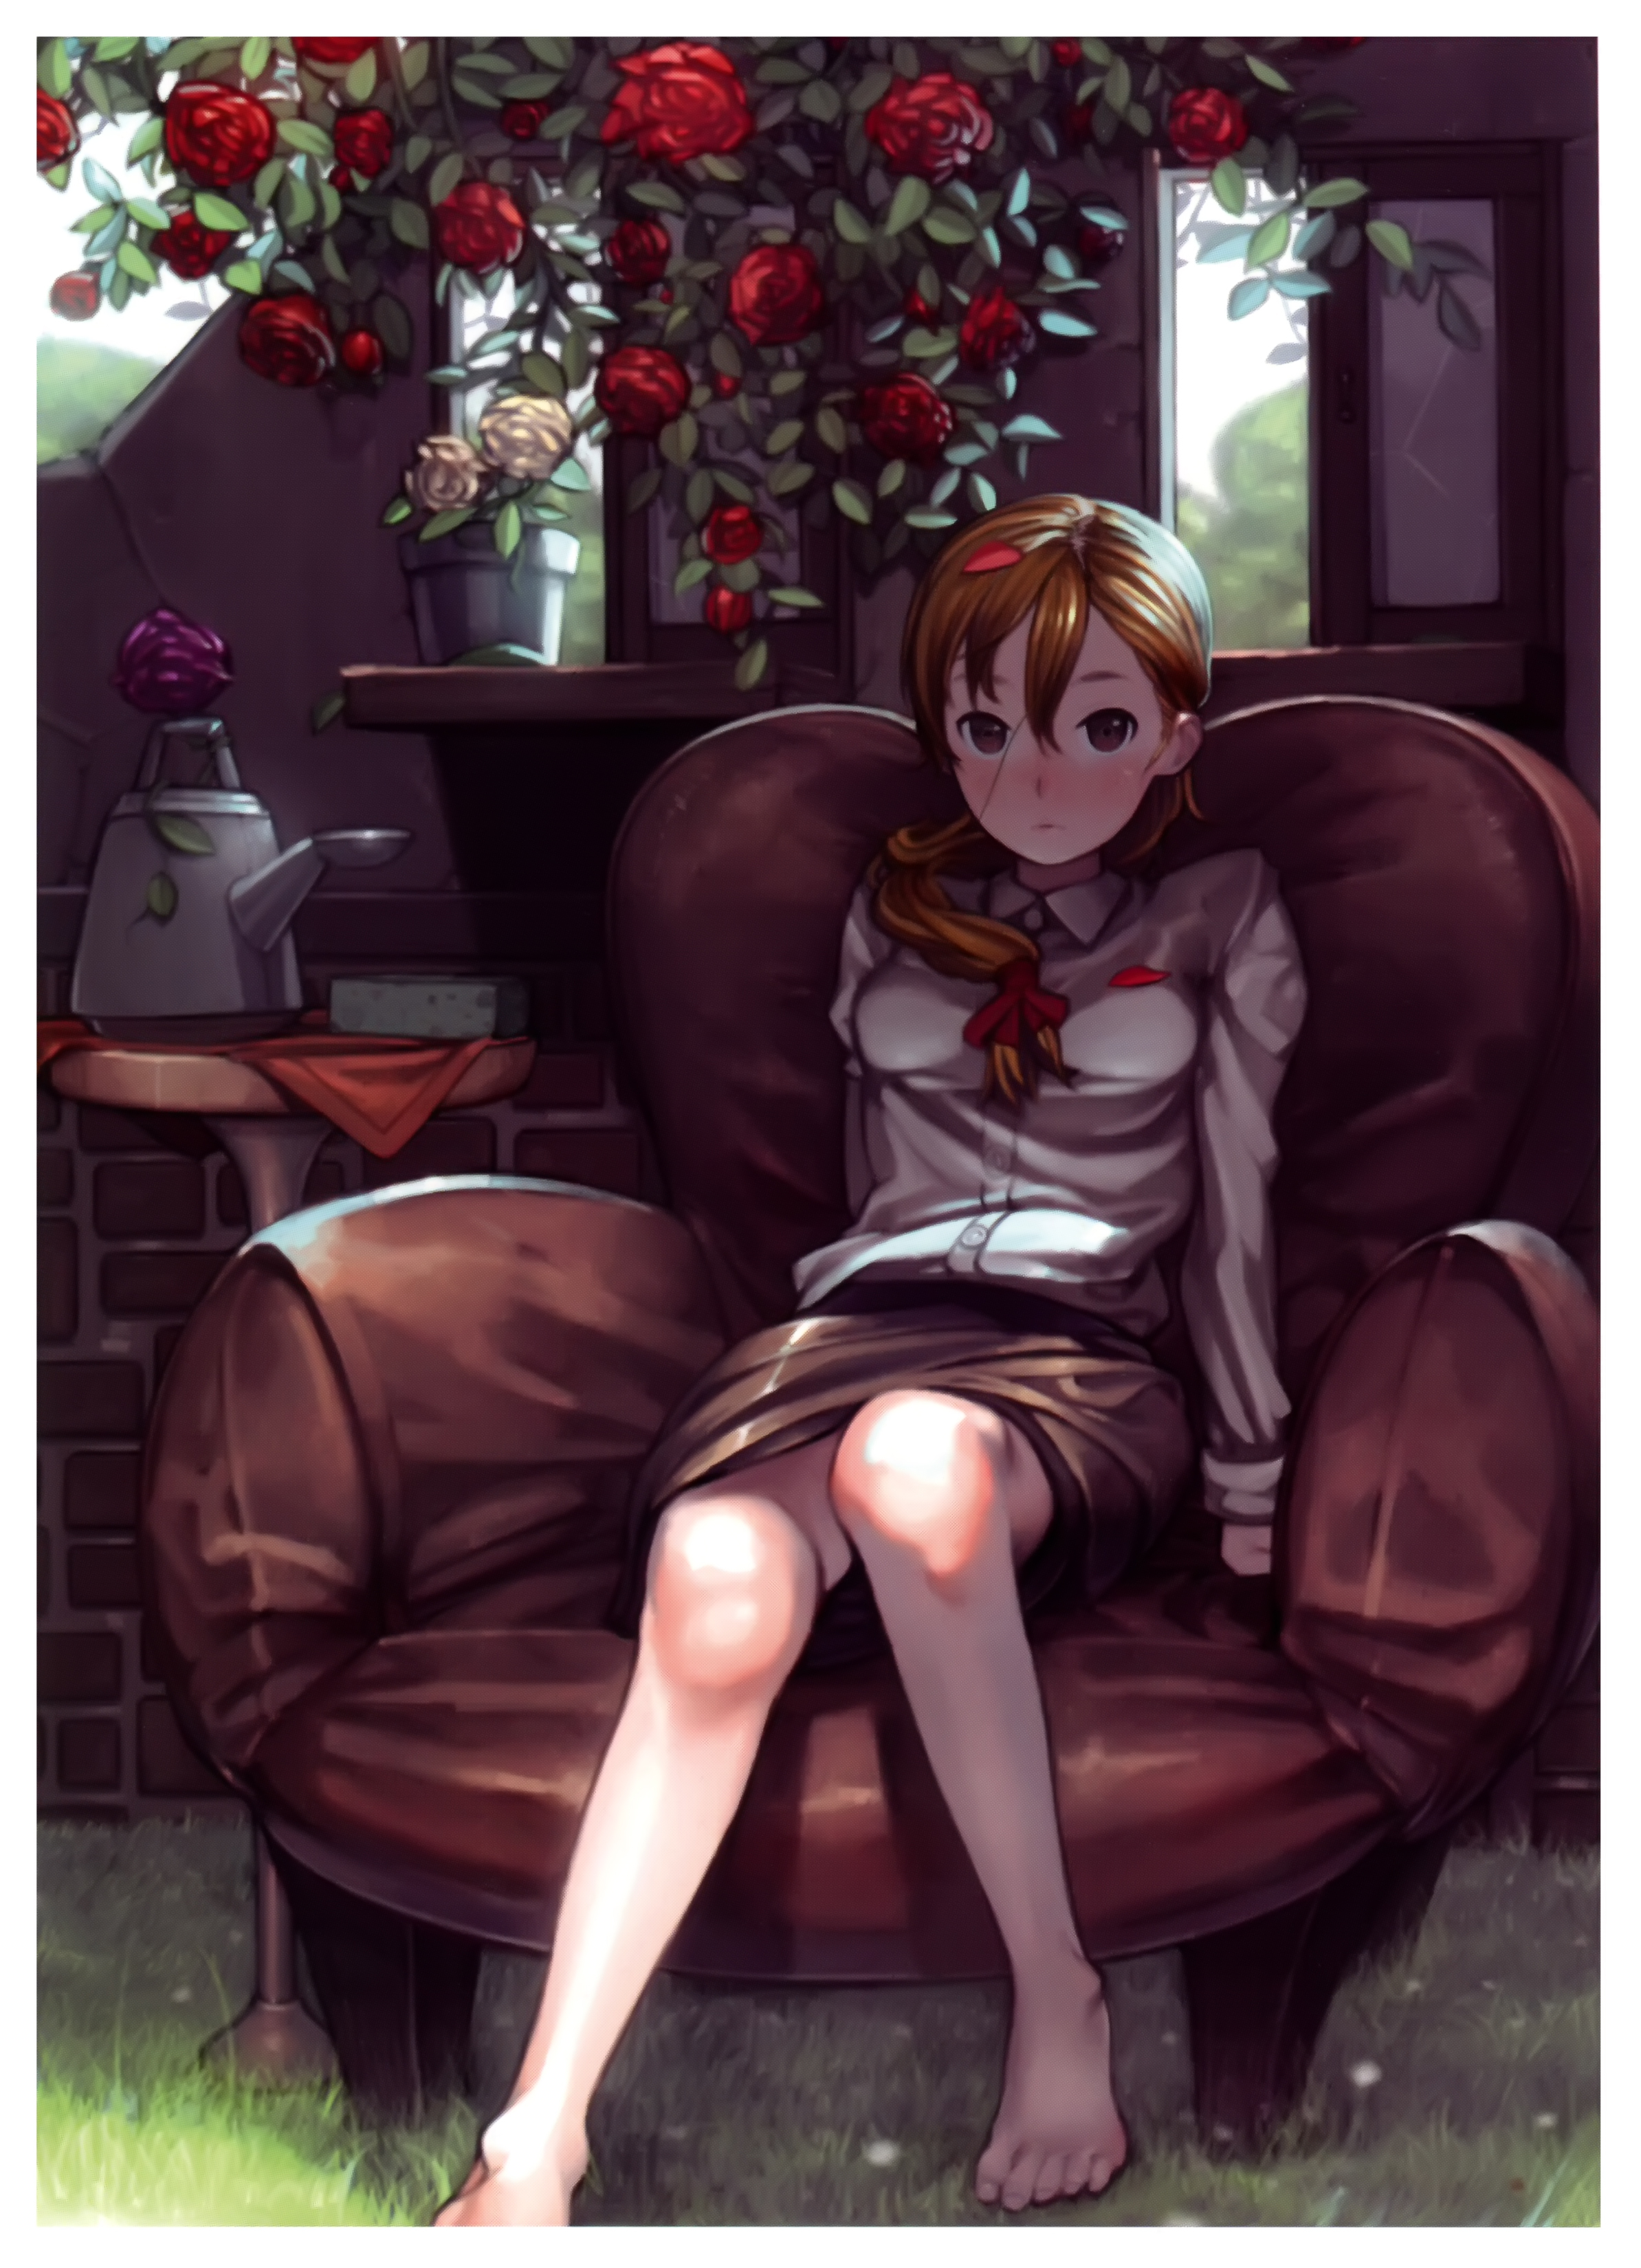 Anime Sitting On Chair Pixiv Girls Col...